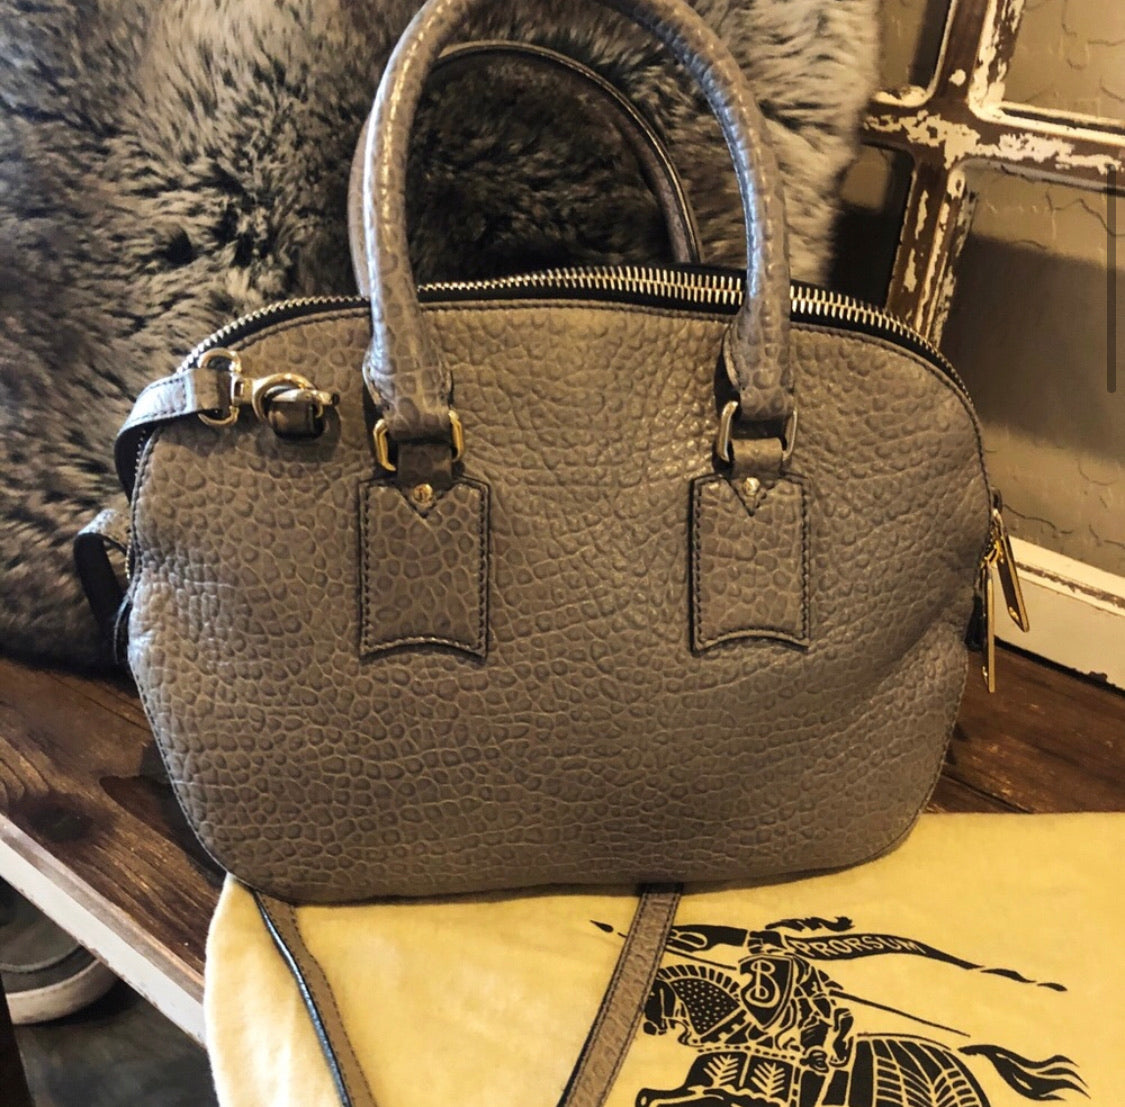 Burberry Orchard Pebbled Leather Heritage Bag